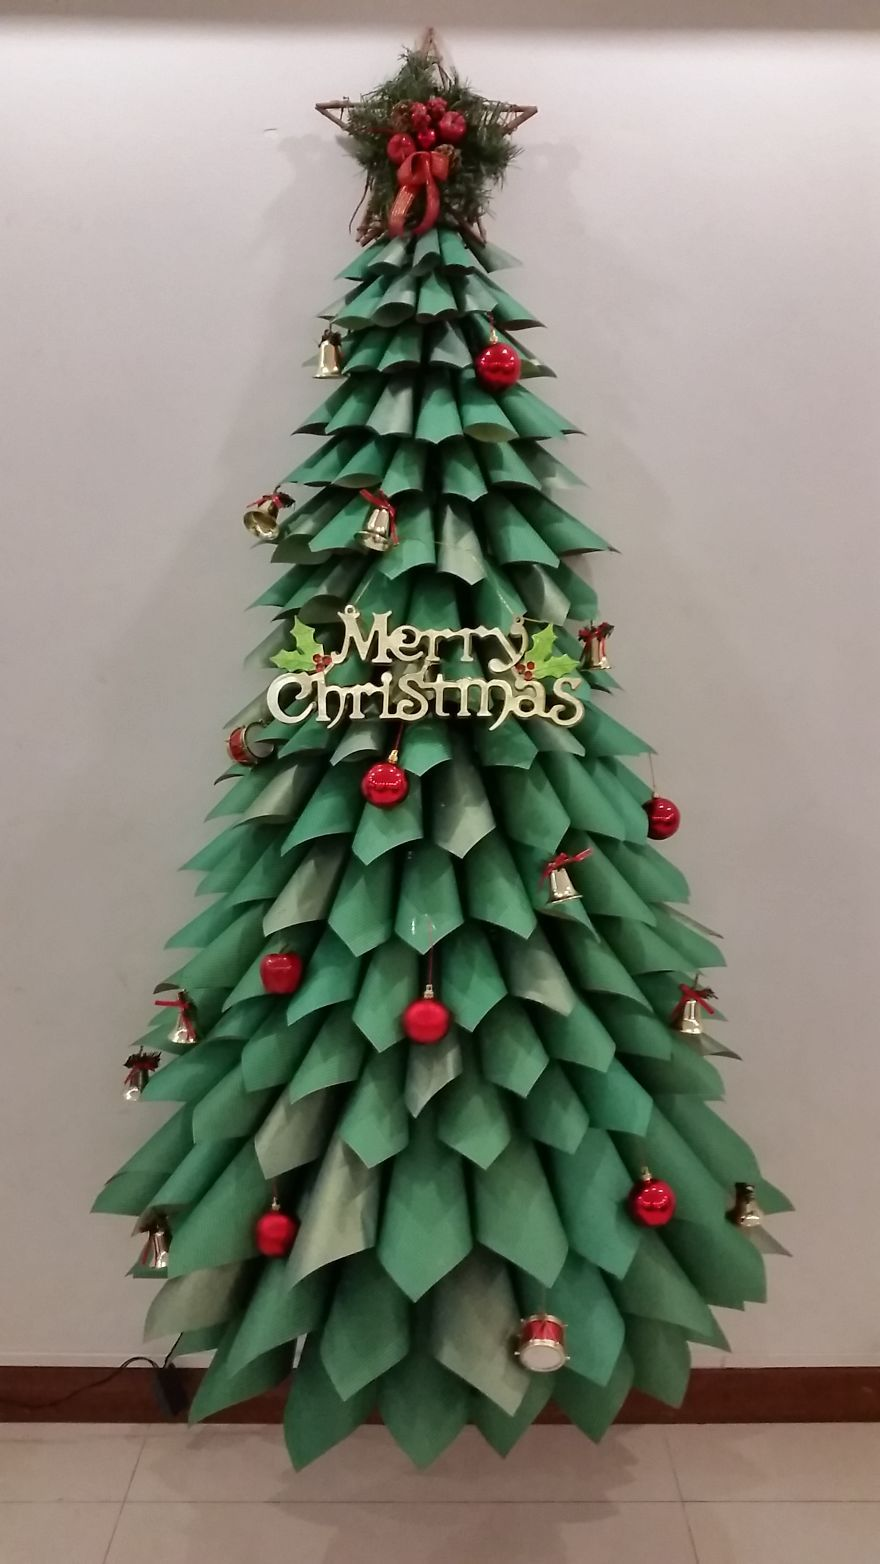 129 Of The Most Creative Diy Christmas Trees Ever Diy Paper Christmas Tree Christmas Tree Decorations Diy Paper Christmas Tree